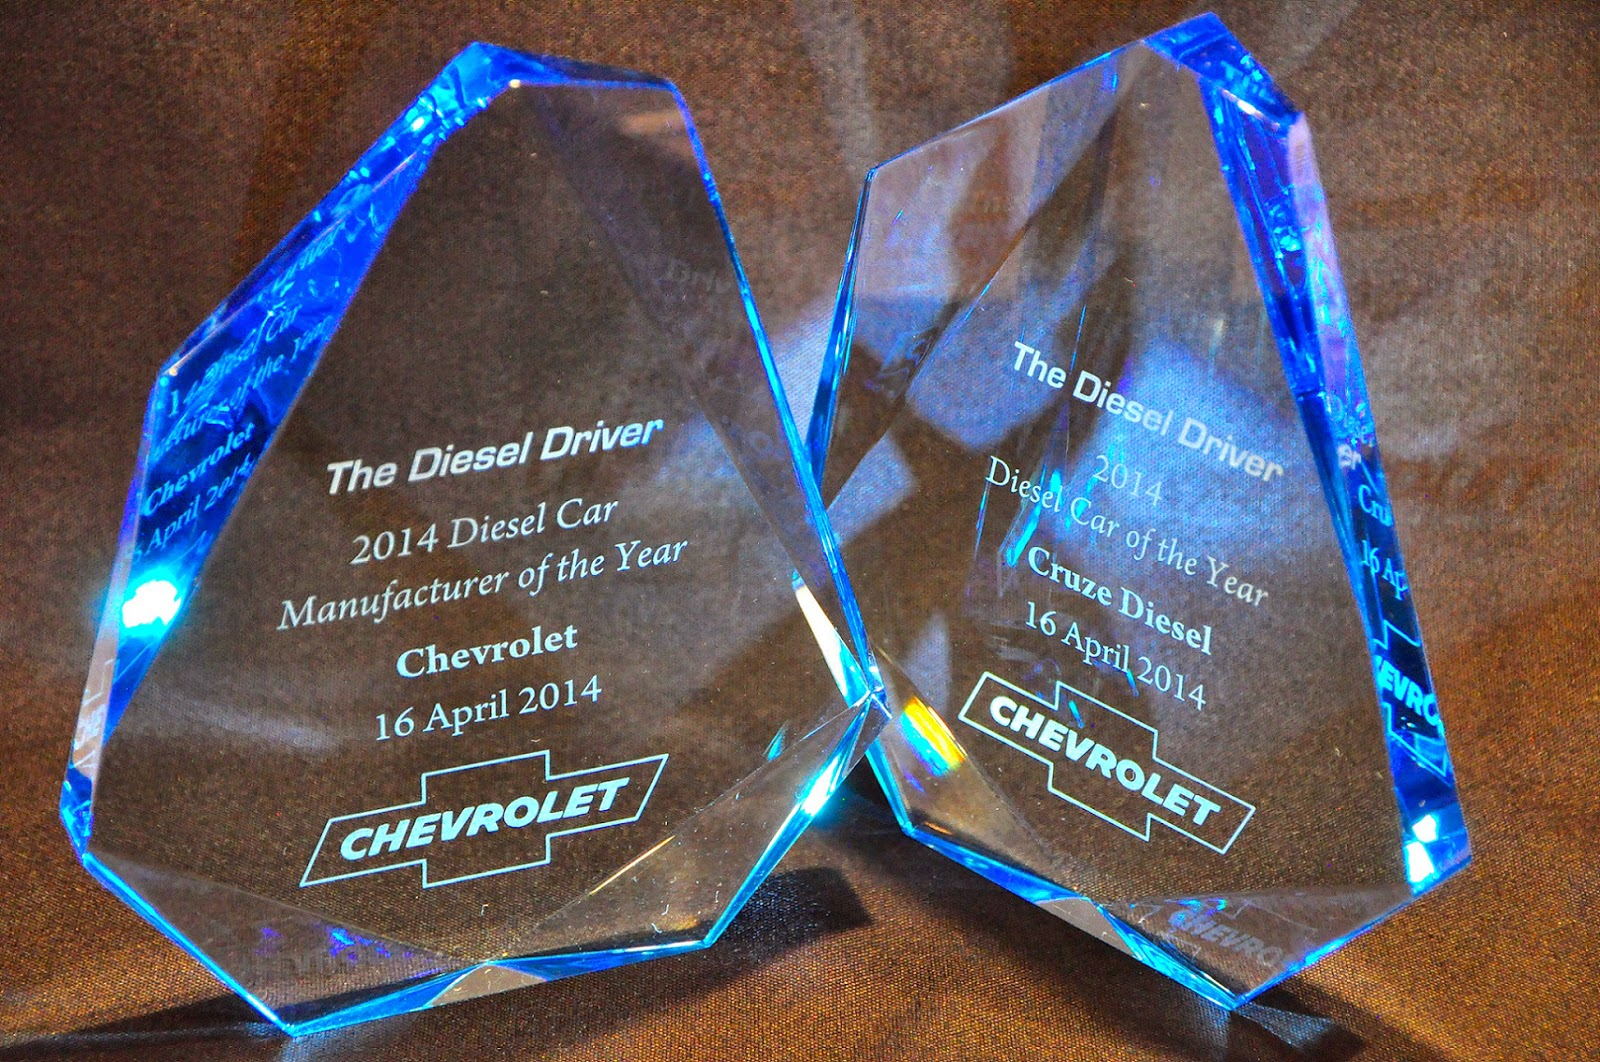 2014 Chevy Cruze is Diesel Car of the Year